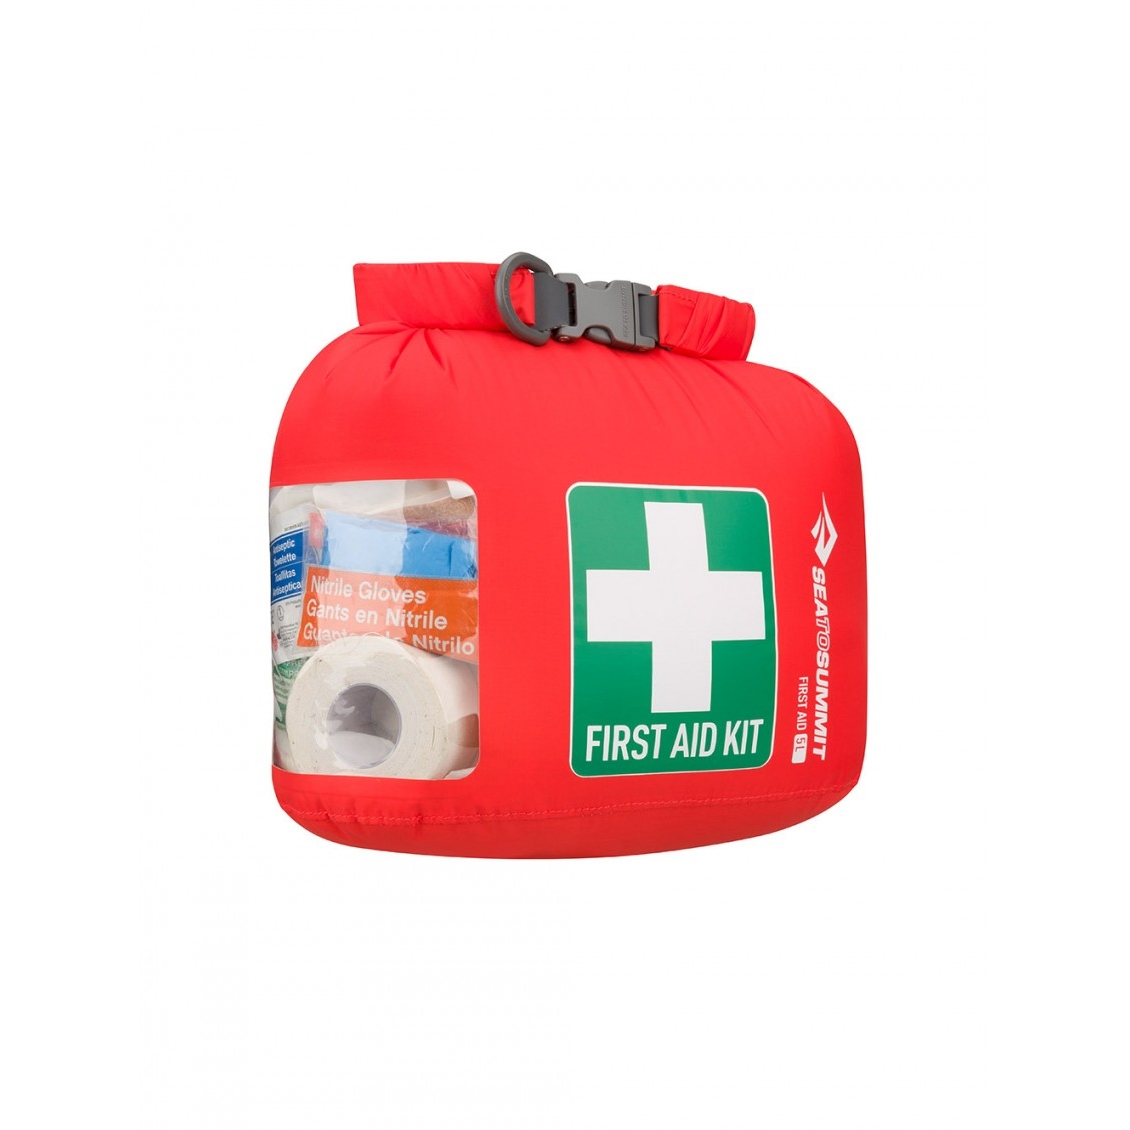 SACO ESTANQUE FIRST AID DRY SACK EXPEDITION 5L - SEA TO SUMMIT